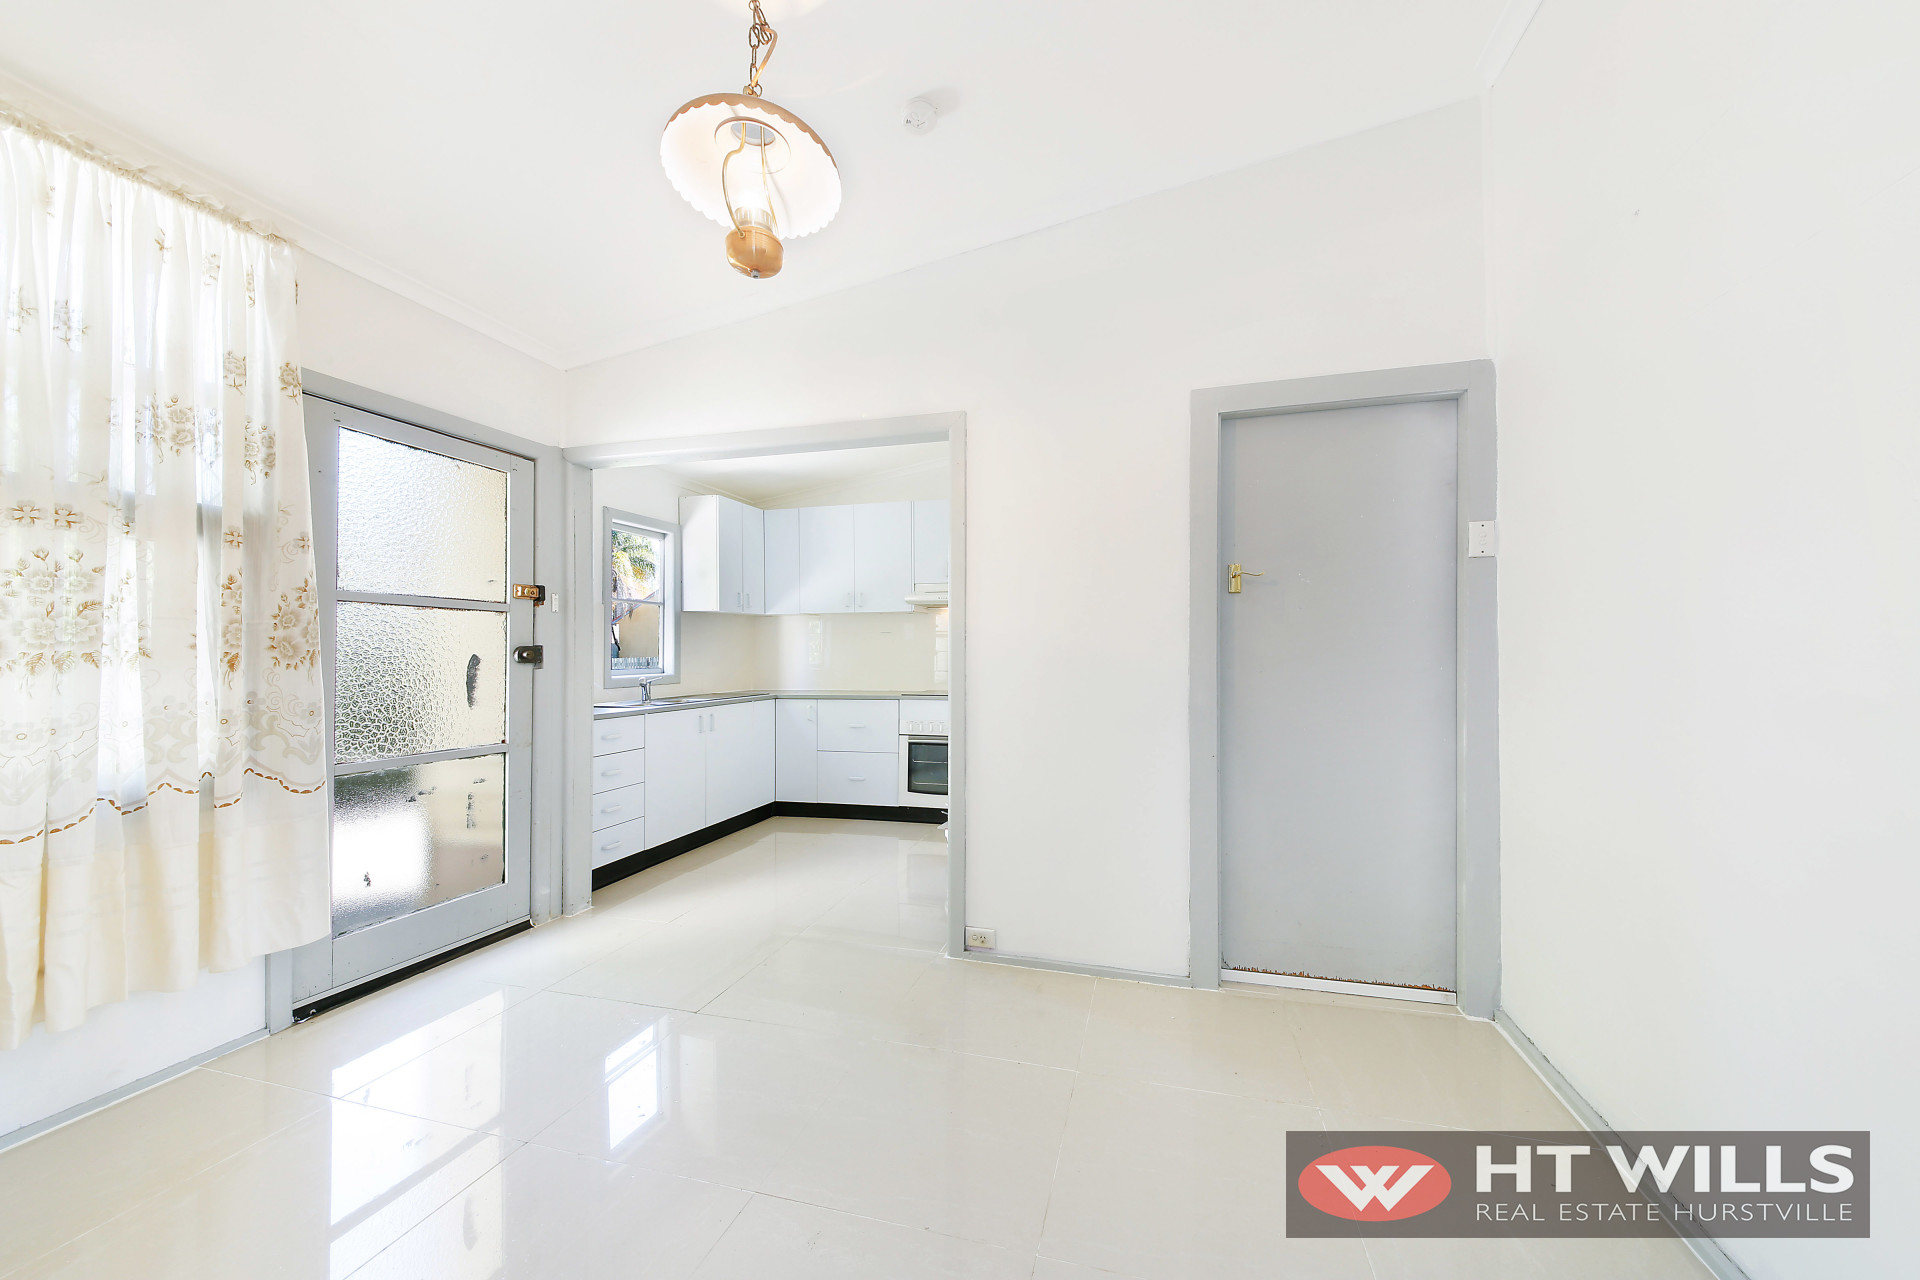 CONVENIENTLY LOCATED 2 BEDROOM HOME